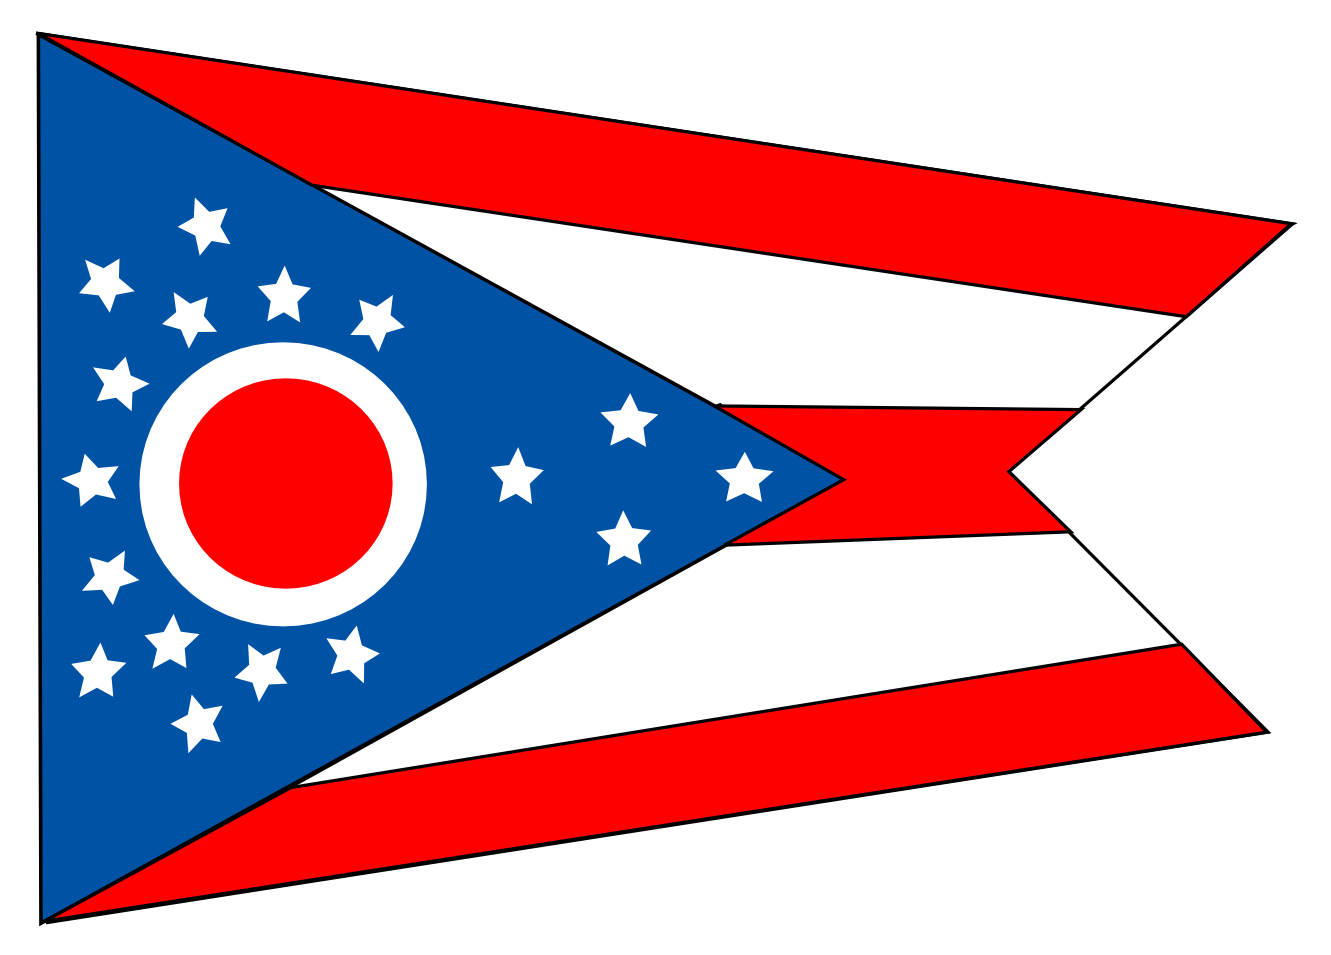 Ohio state flag clipart.